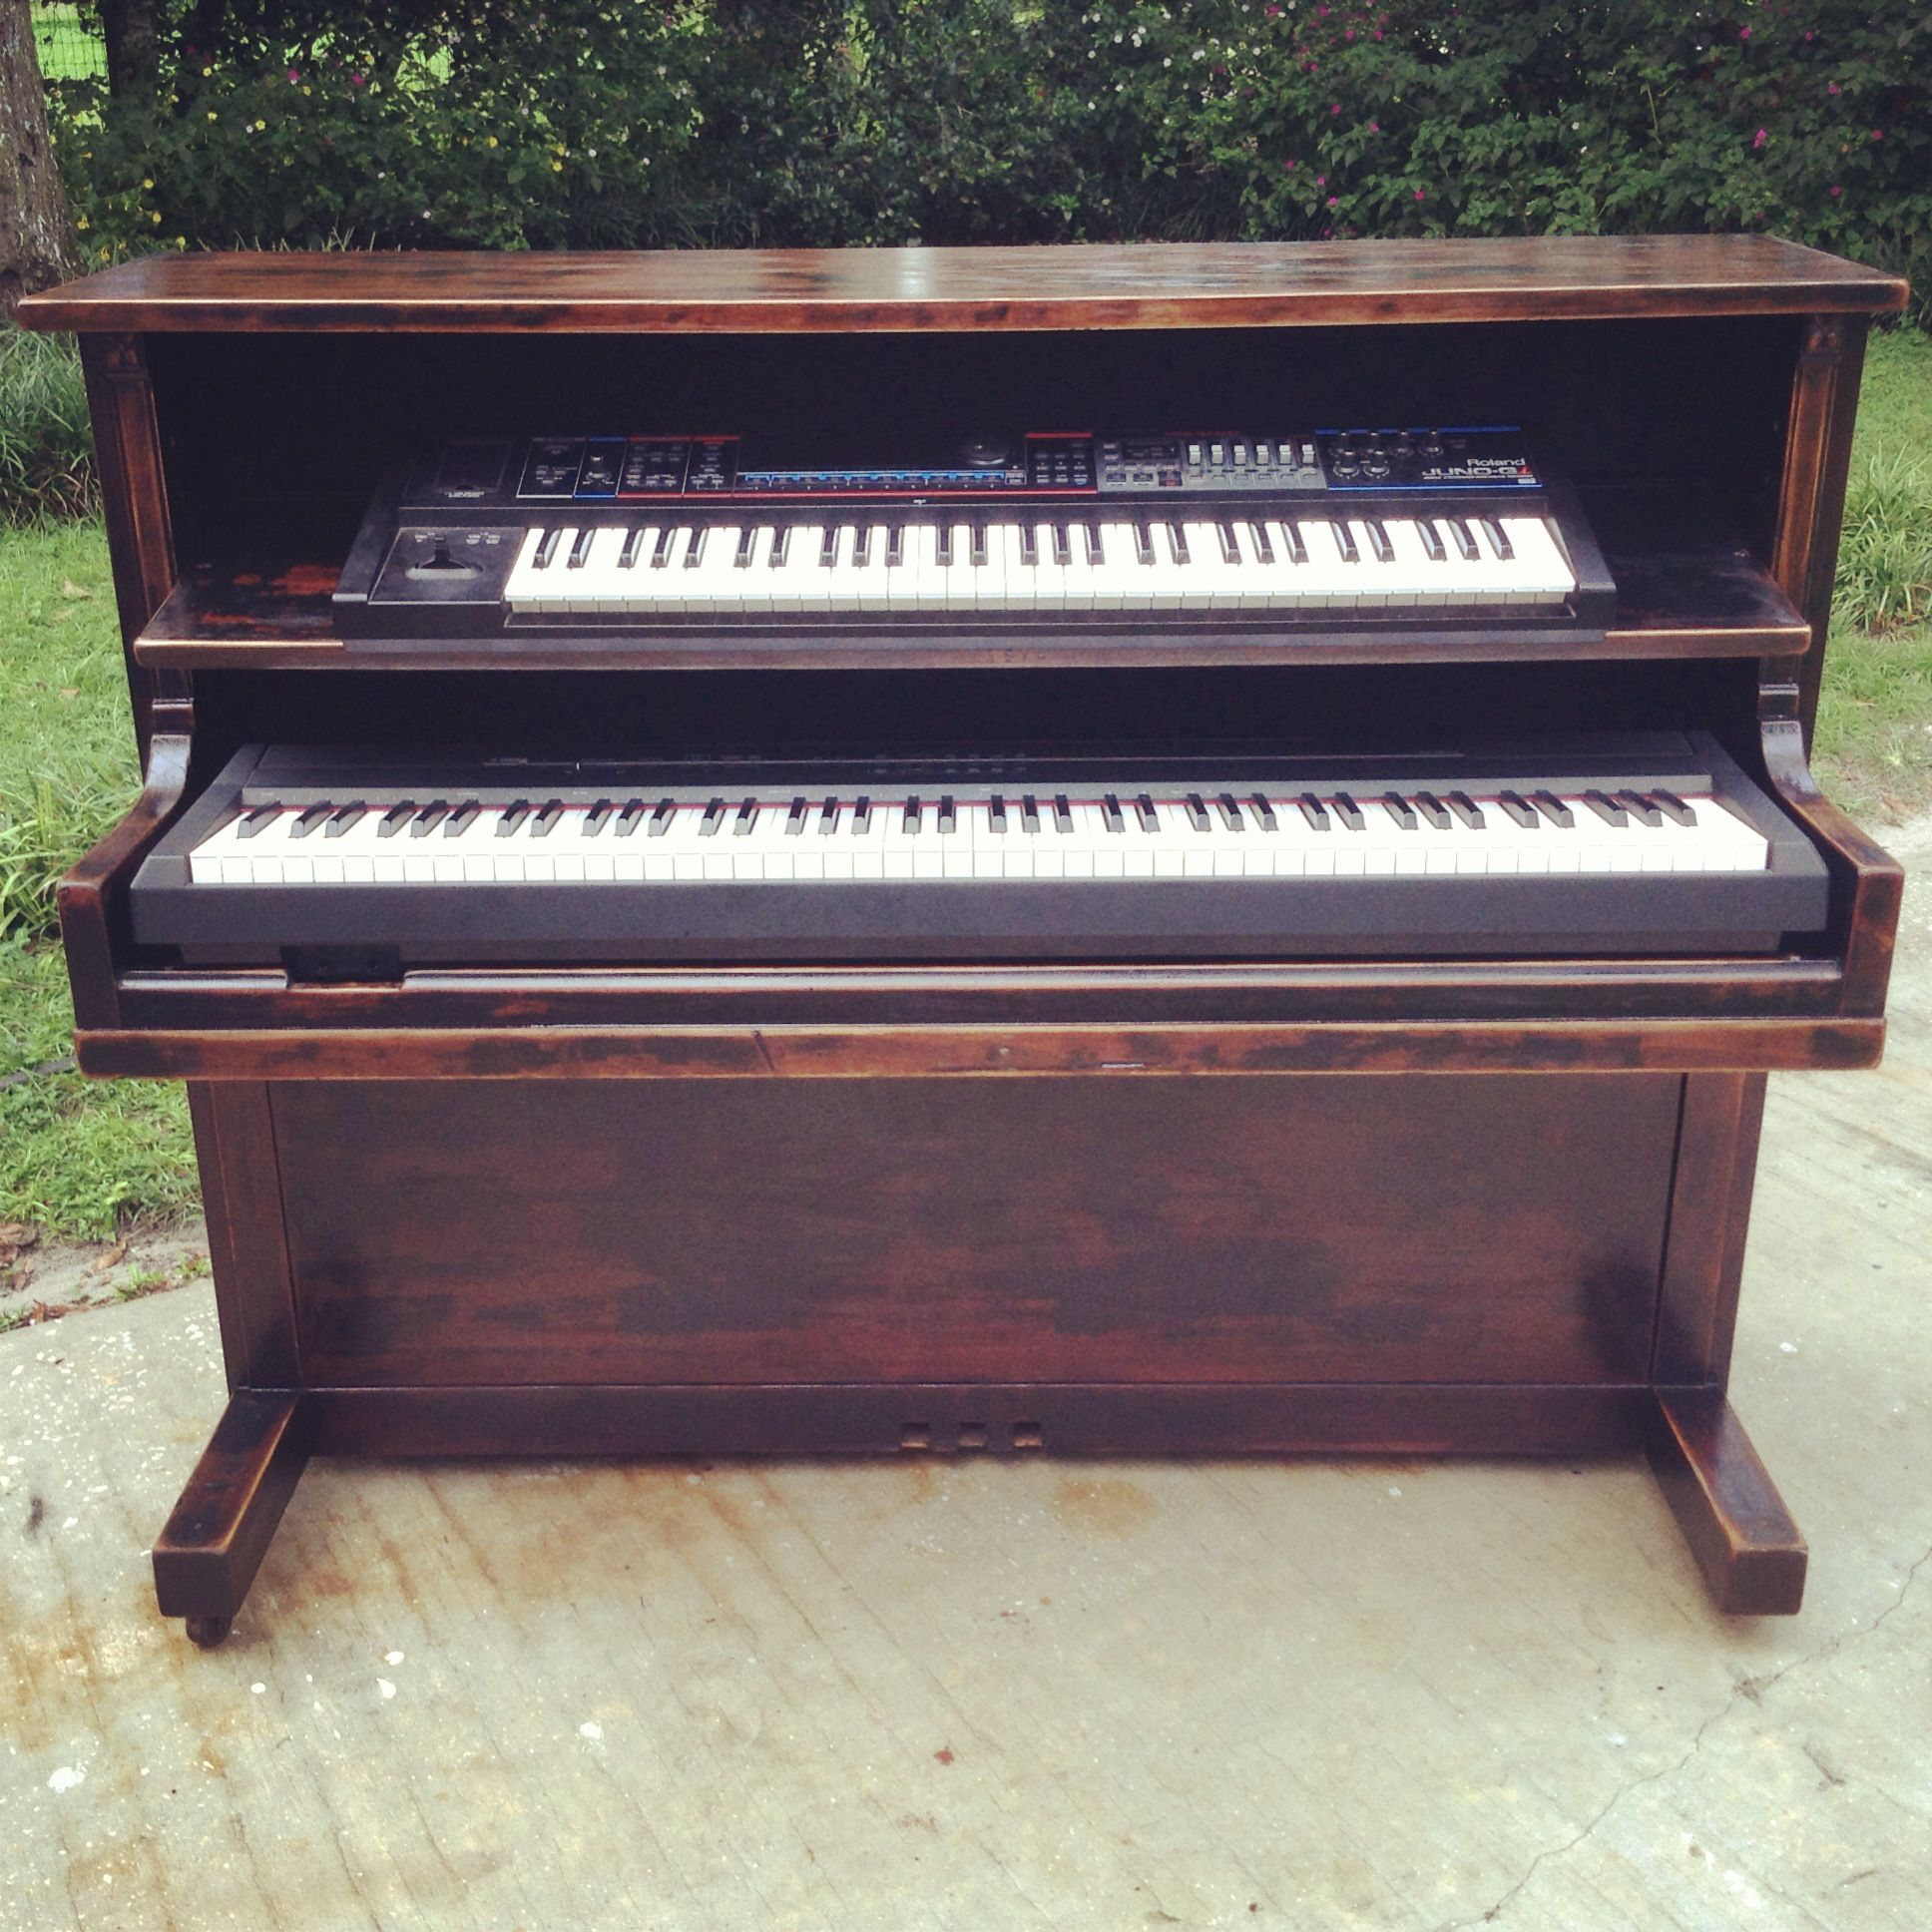 A Keyboard Stand Made Out Of Old Upright Piano